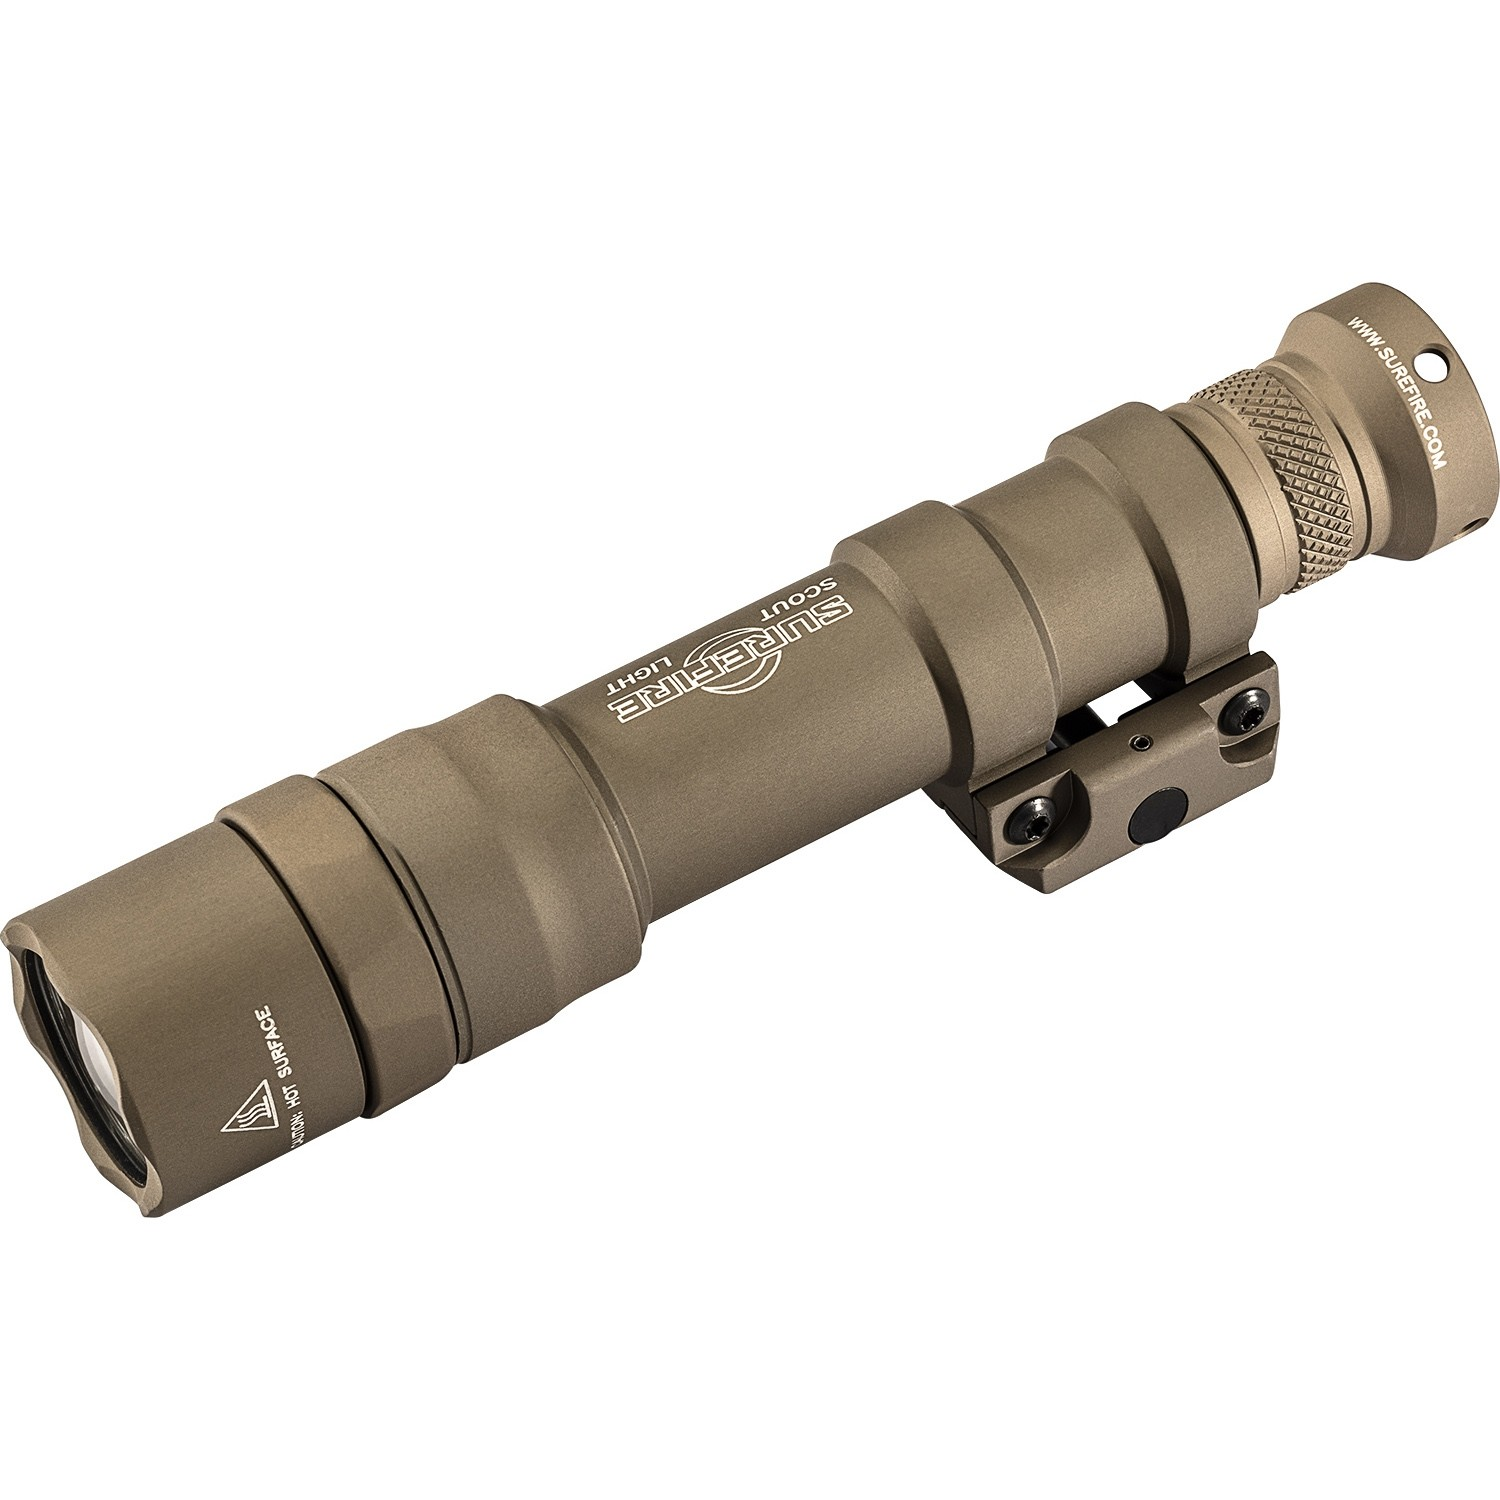 Hiking Role Playing DE War Games WADSN Airsoft Tactical Torch M600DF Type Dual Fuel 1400 Lumens LED Scout Light with Button Switch and Pressure Switch Picatinny Rail Mount for Camping